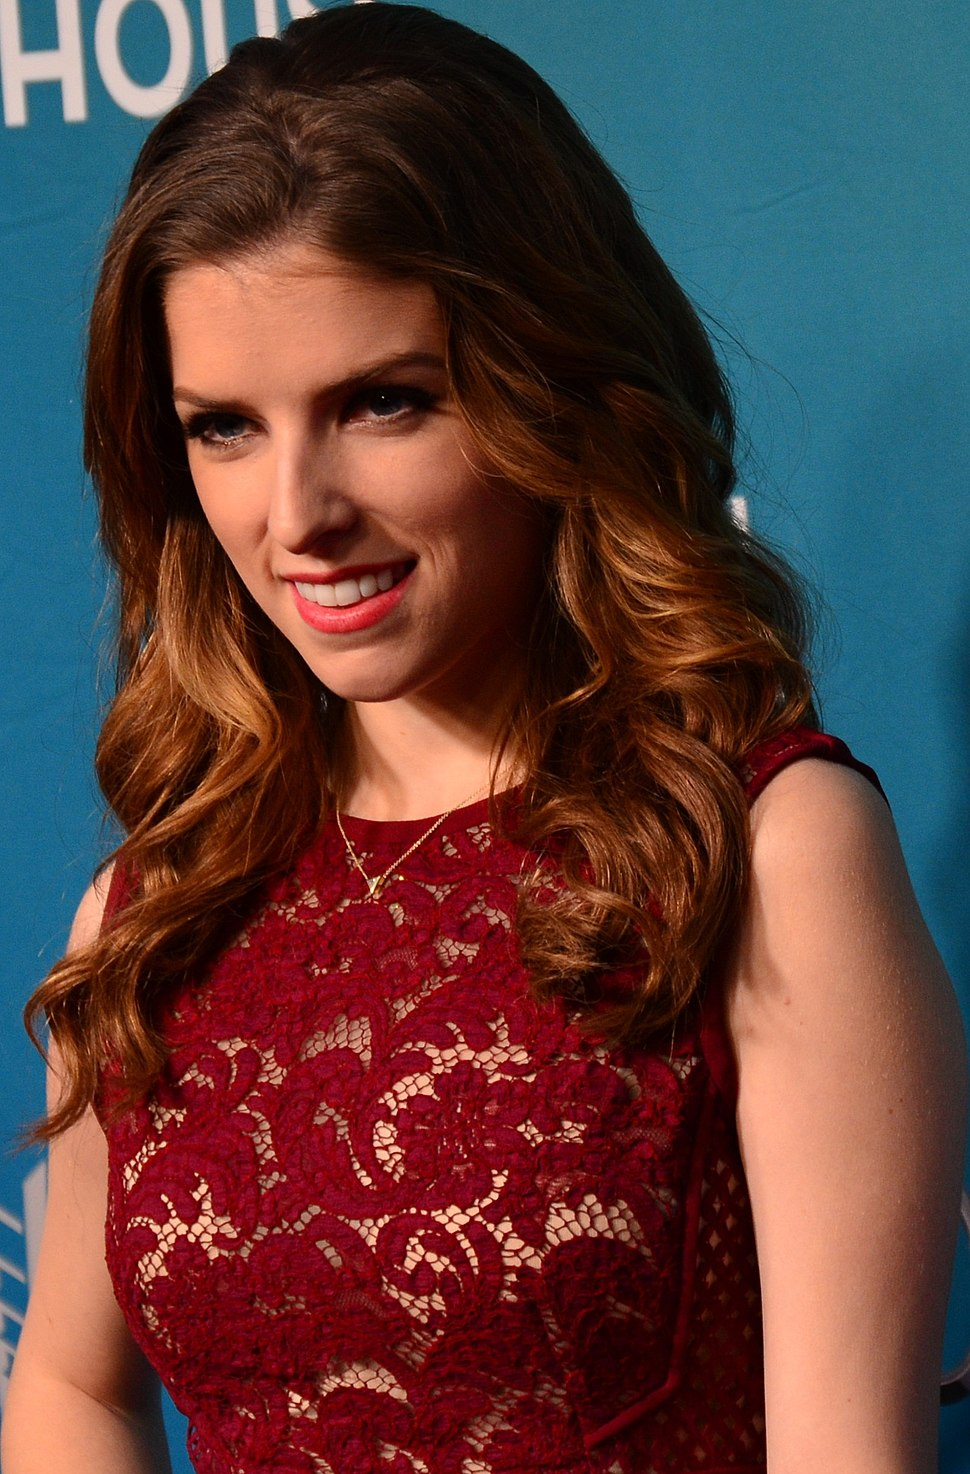 Anna Kendrick March 22, 2014 (cropped)